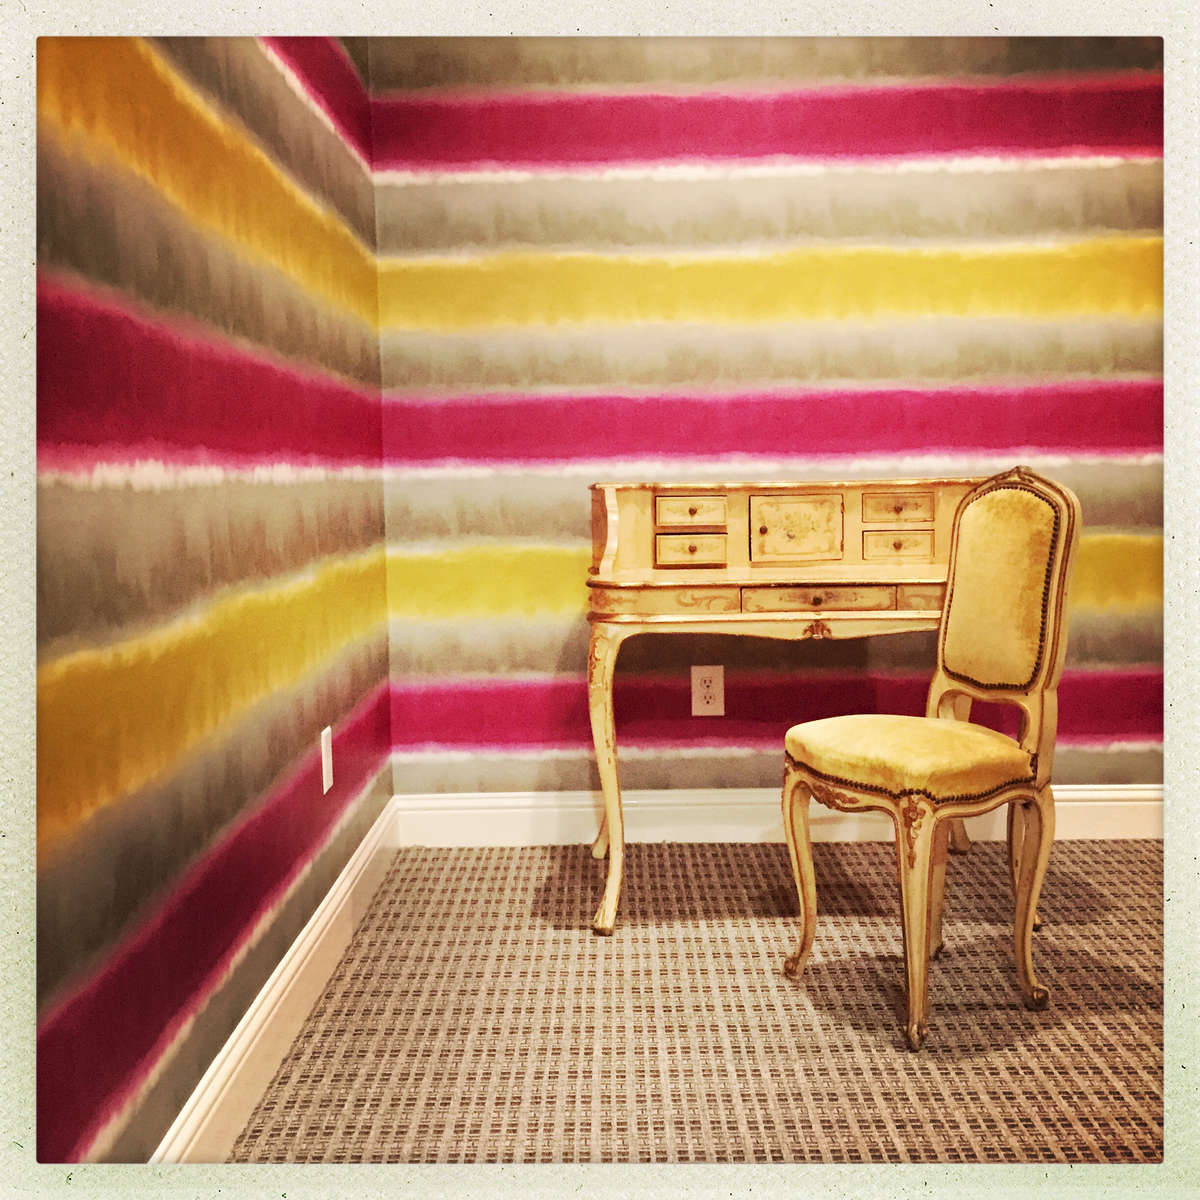 It just worked out that the 19th Century vanity and chair happened to match the 21st Century wallpaper.